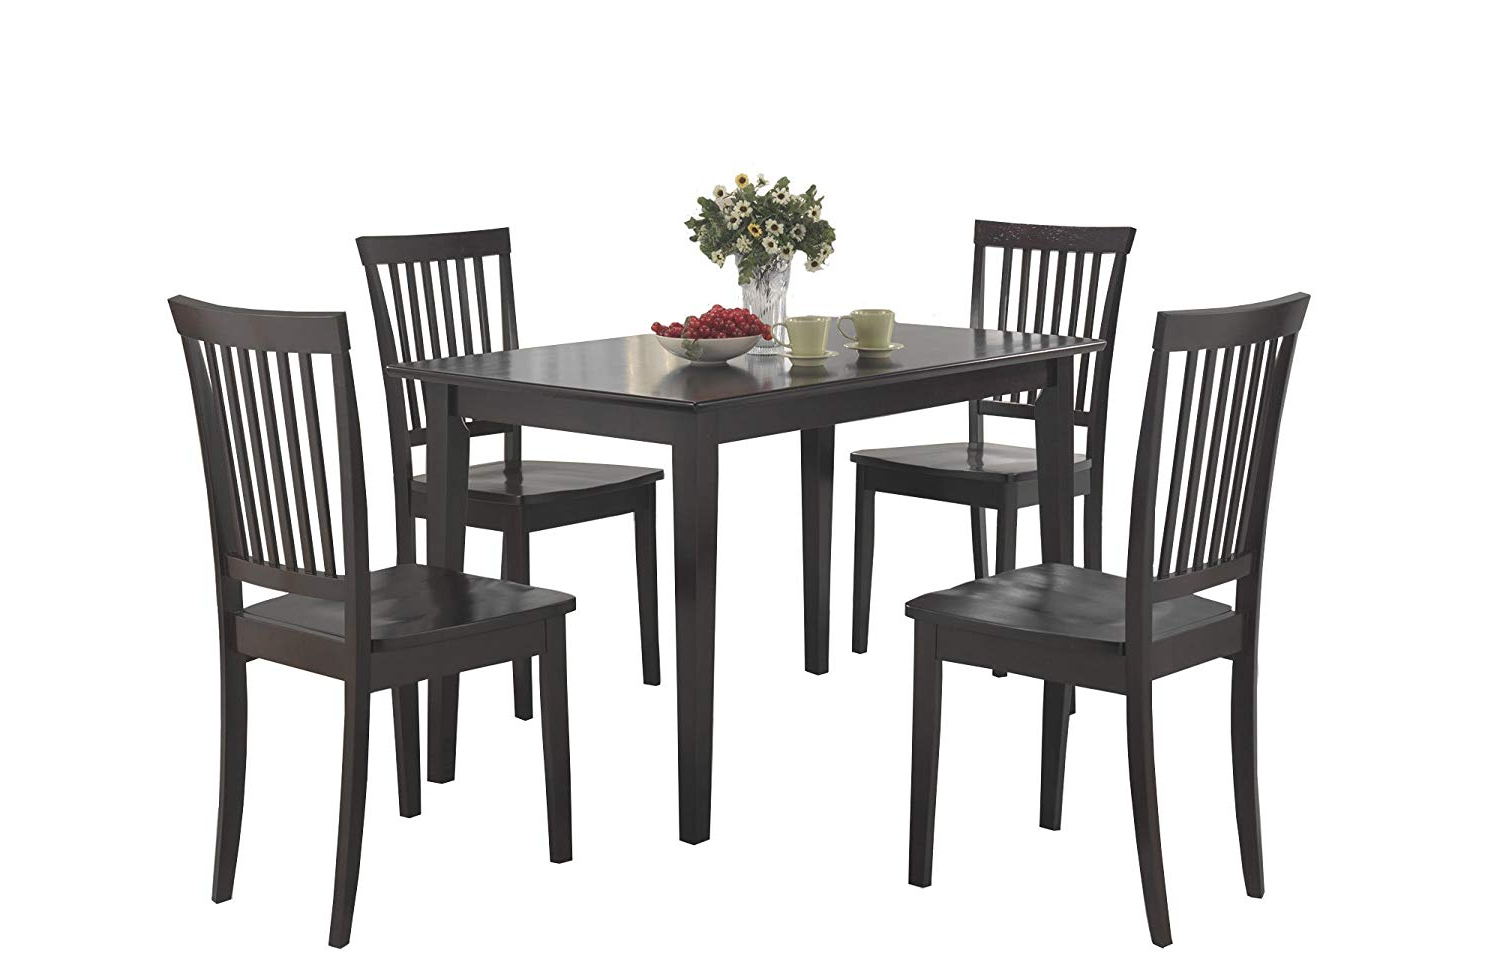 Amazon – Coaster 5 Piece Dining Set, Table Top With 4 Chairs Inside 2019 Kieffer 5 Piece Dining Sets (View 24 of 25)